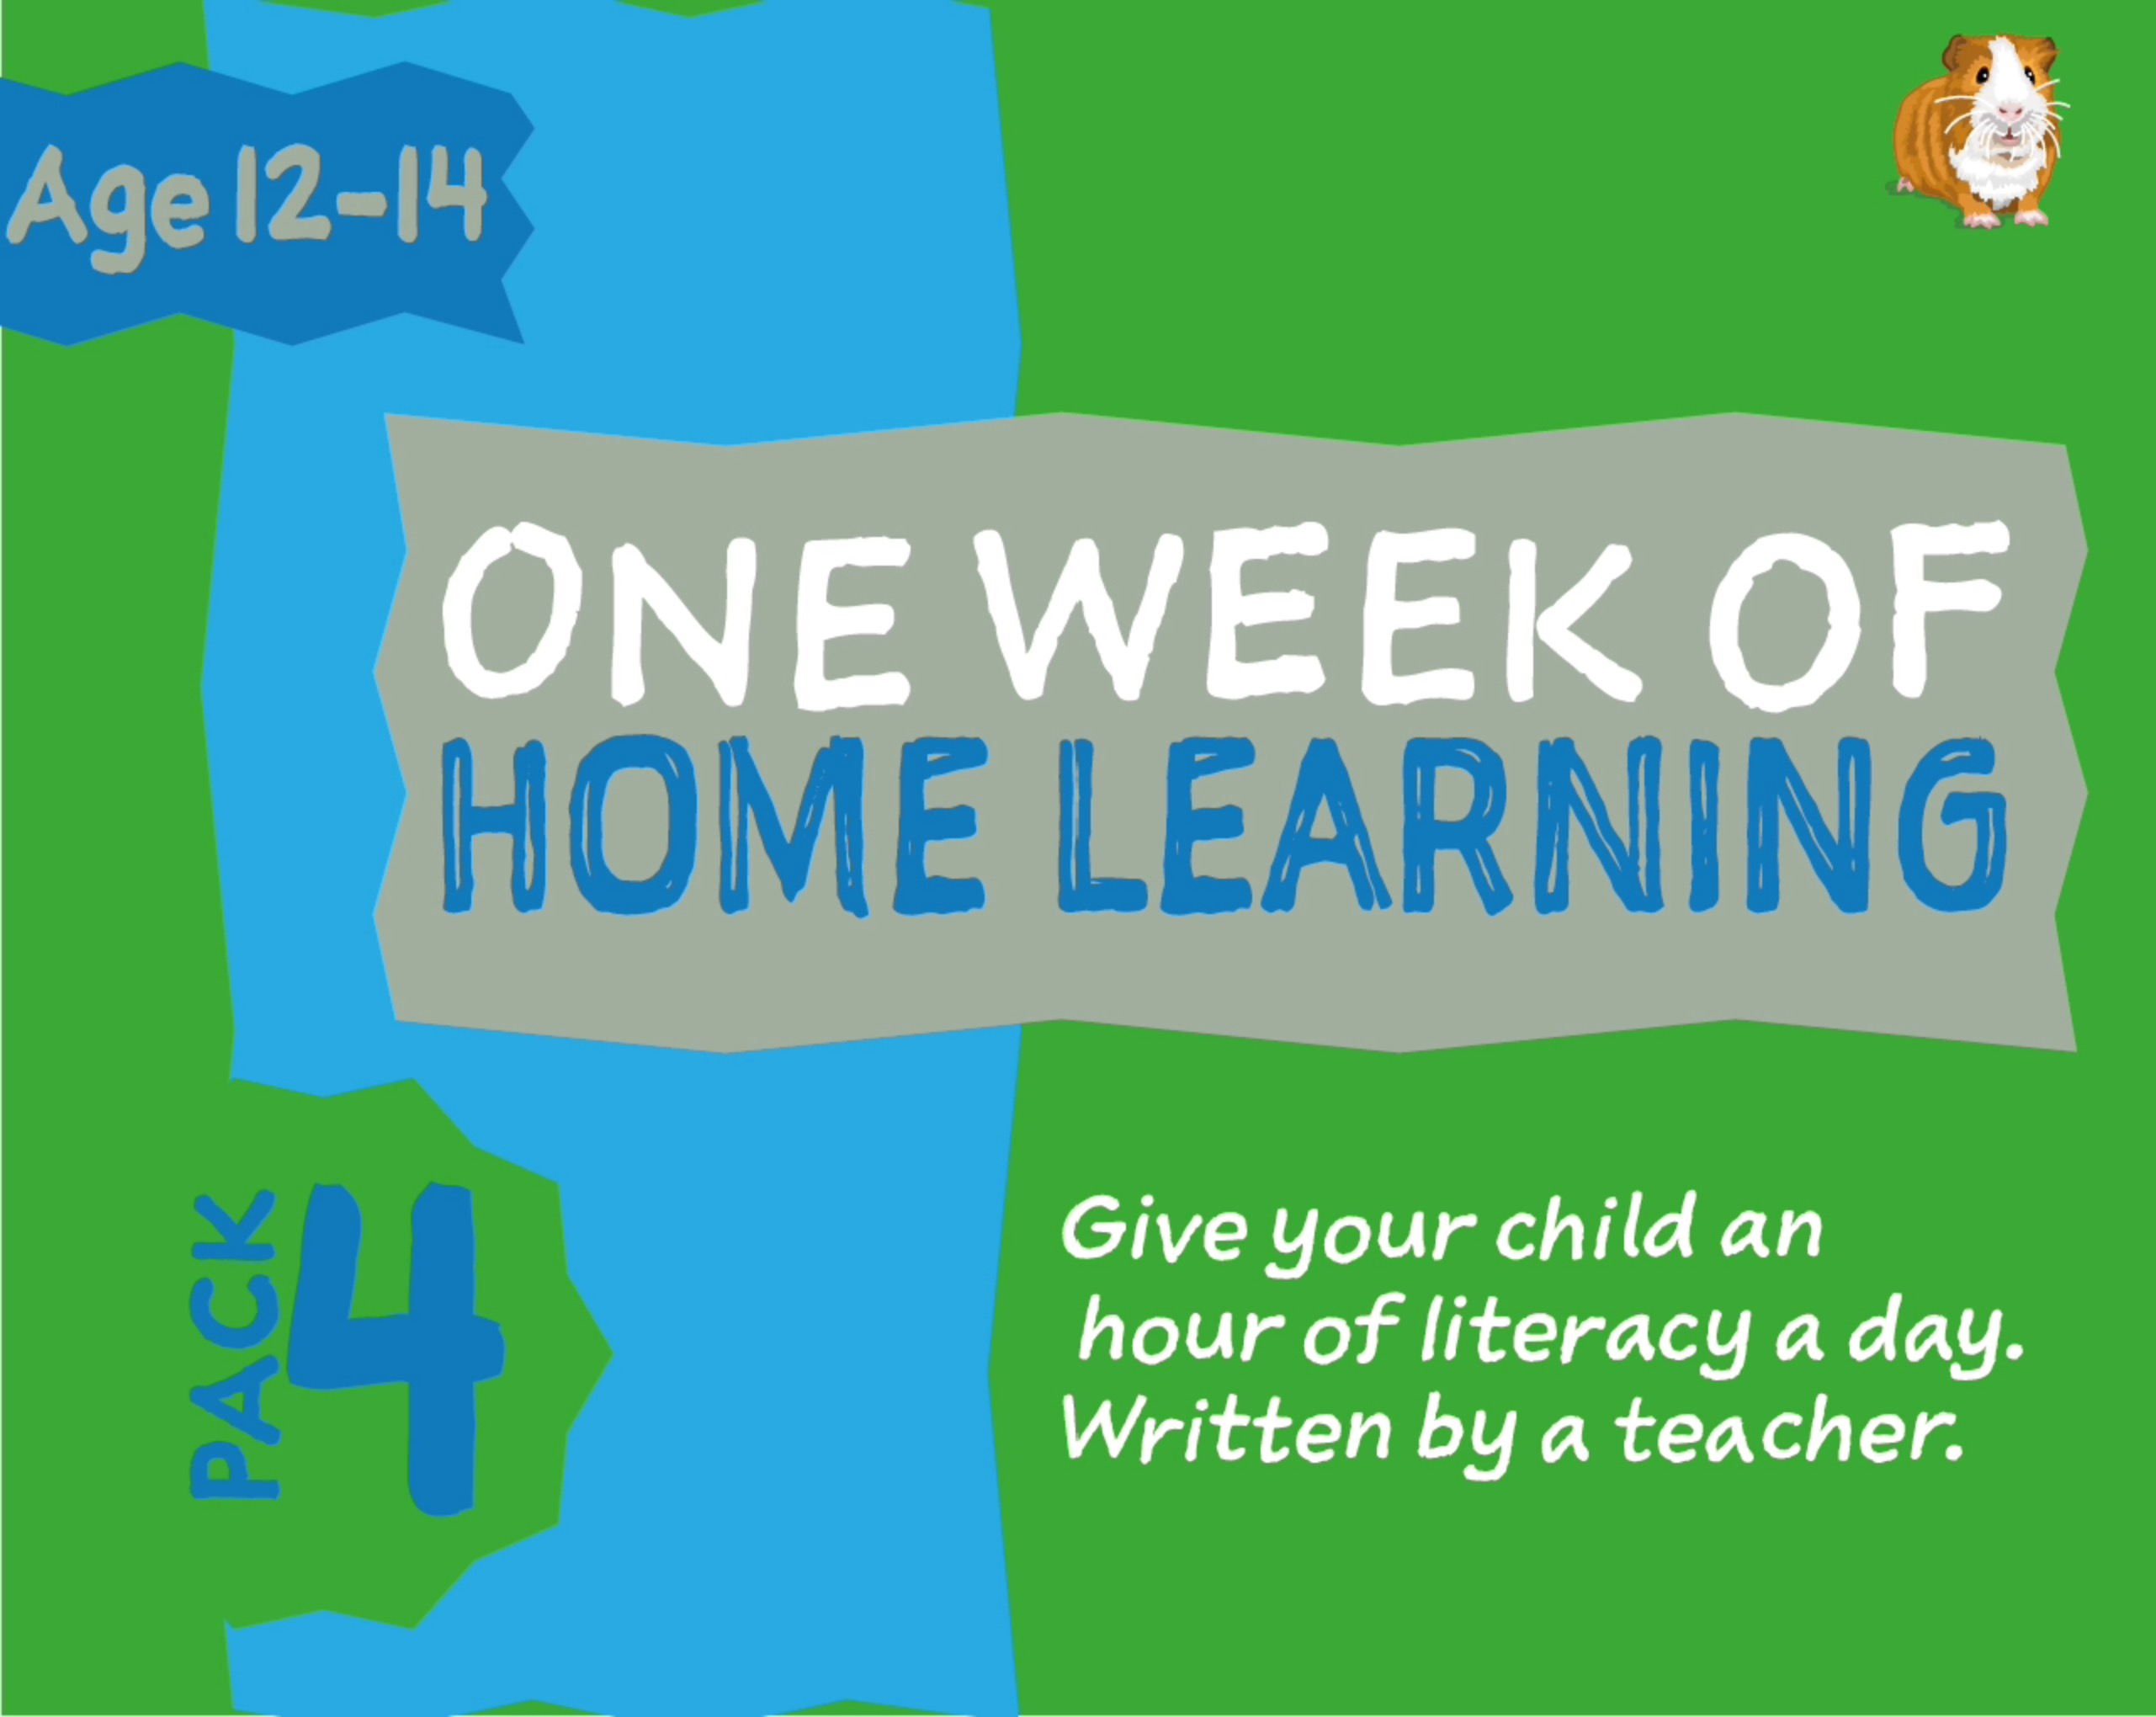 1 WEEK Literacy Distance Learning: Pack FOUR (age 12-14 years) Grades 6-8